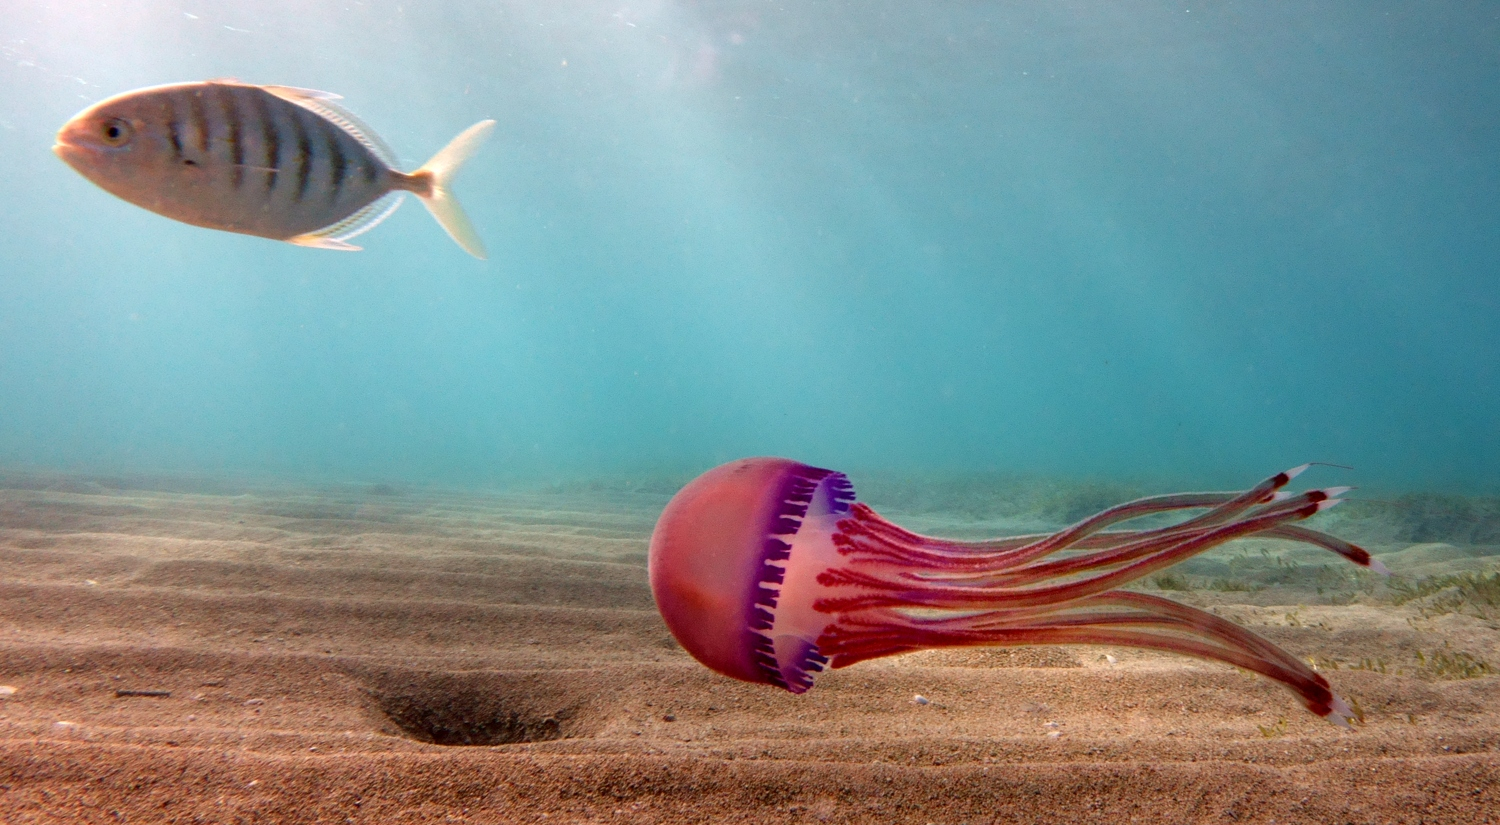 Jellyfish by Dave Currey